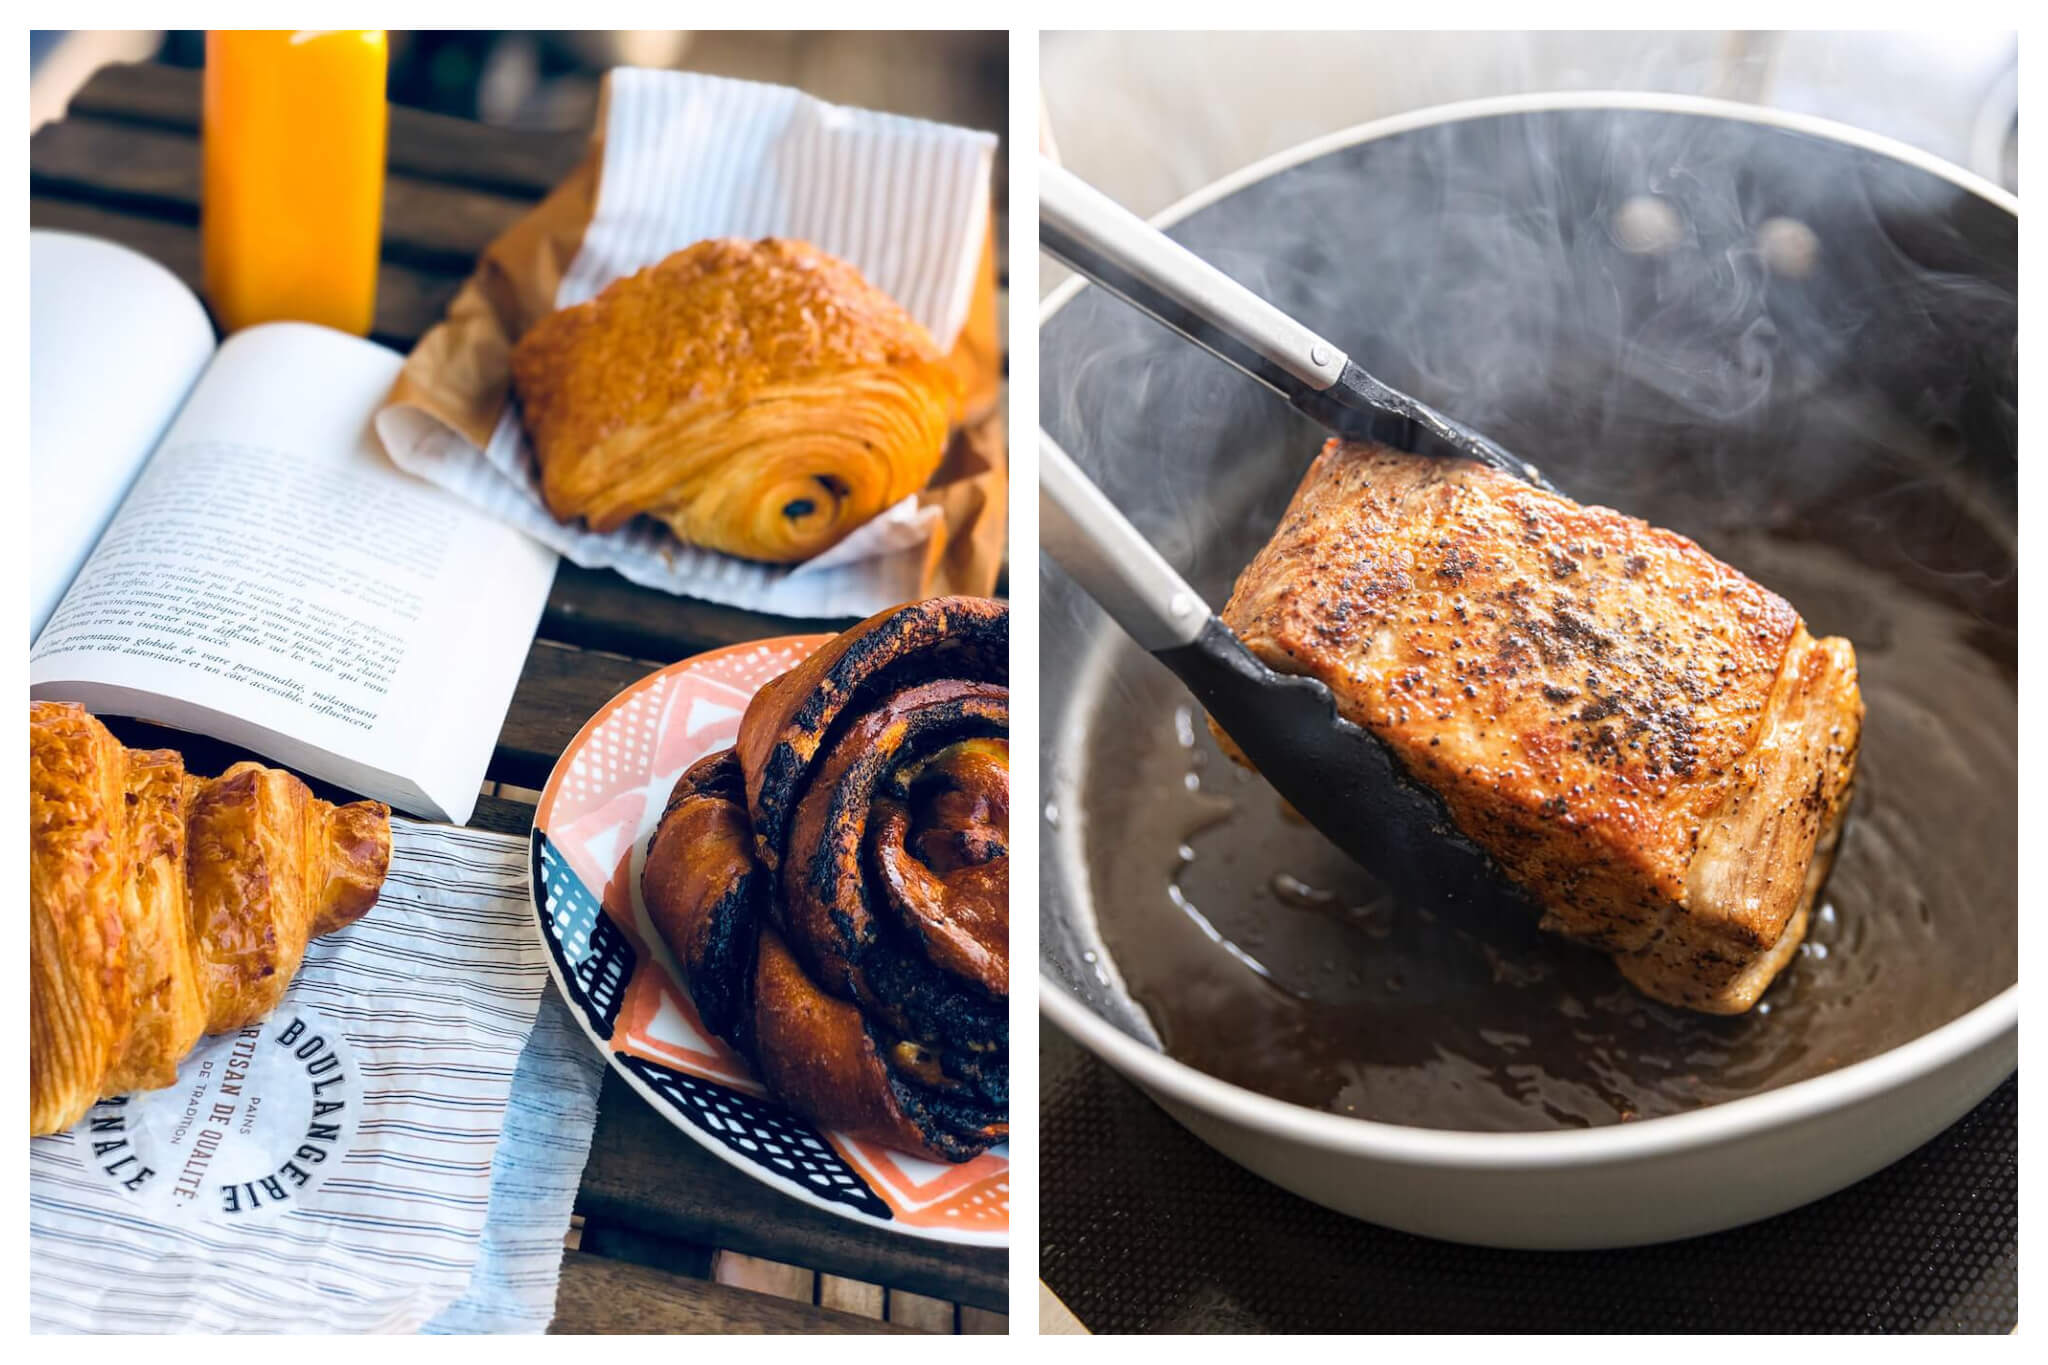 Left: Various pastries, including a pain au chocolat and croissant, sit atop a wodden table next to an open book and a glass of orange juice, Right: A piece of rish is cooked in a pan filled with hot oil, and a pair of tongs coming in from the left side of the frame are used to flip the meat in the pan.